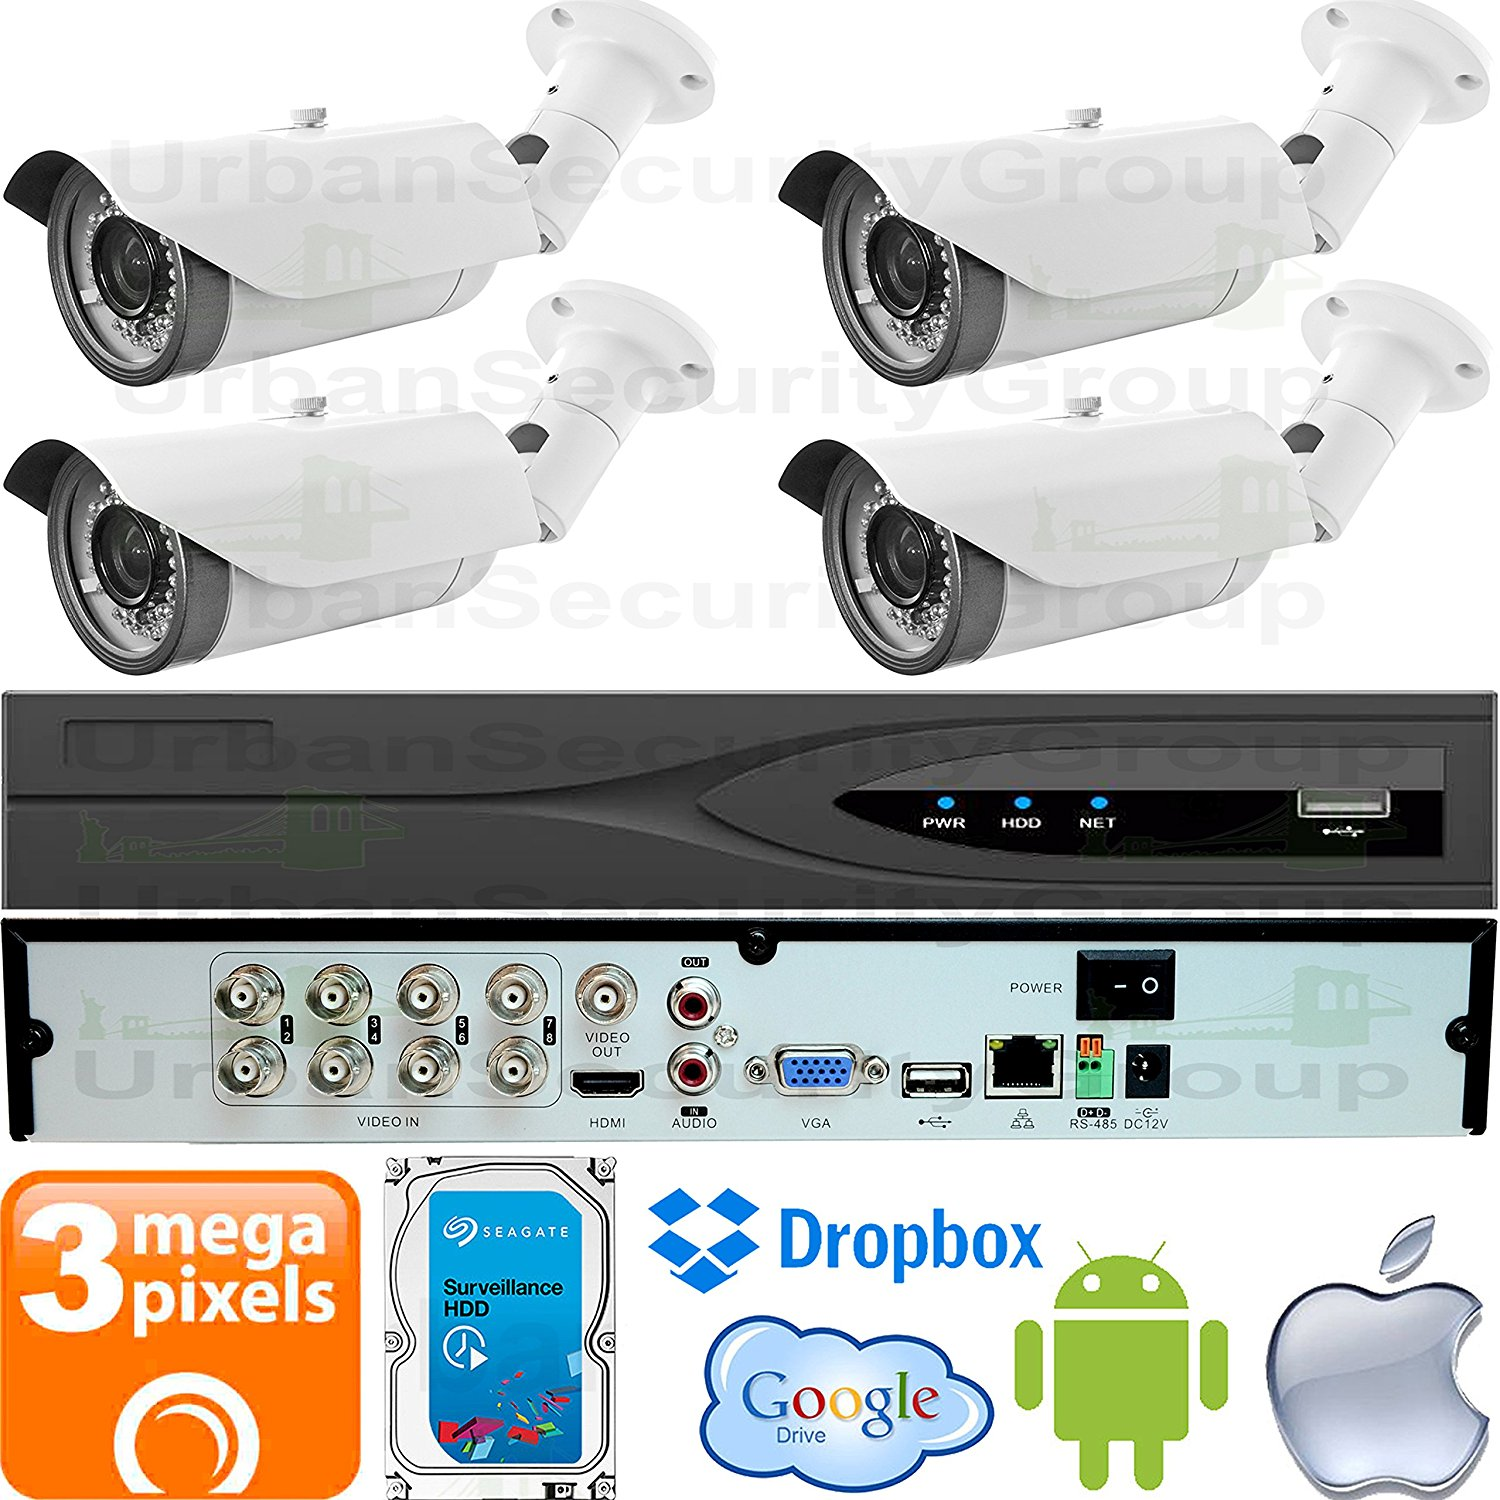 USG Business Grade 3MP 4 Camera Security System CCTV Kit : 4x 3MP 2.8-12mm Vari-Focal Bullet Cameras + 1x 8 Channel 3MP DVR + 1x 4TB HDD : Apple Android Phone App : Coaxial BNC Cable : Plug & Play